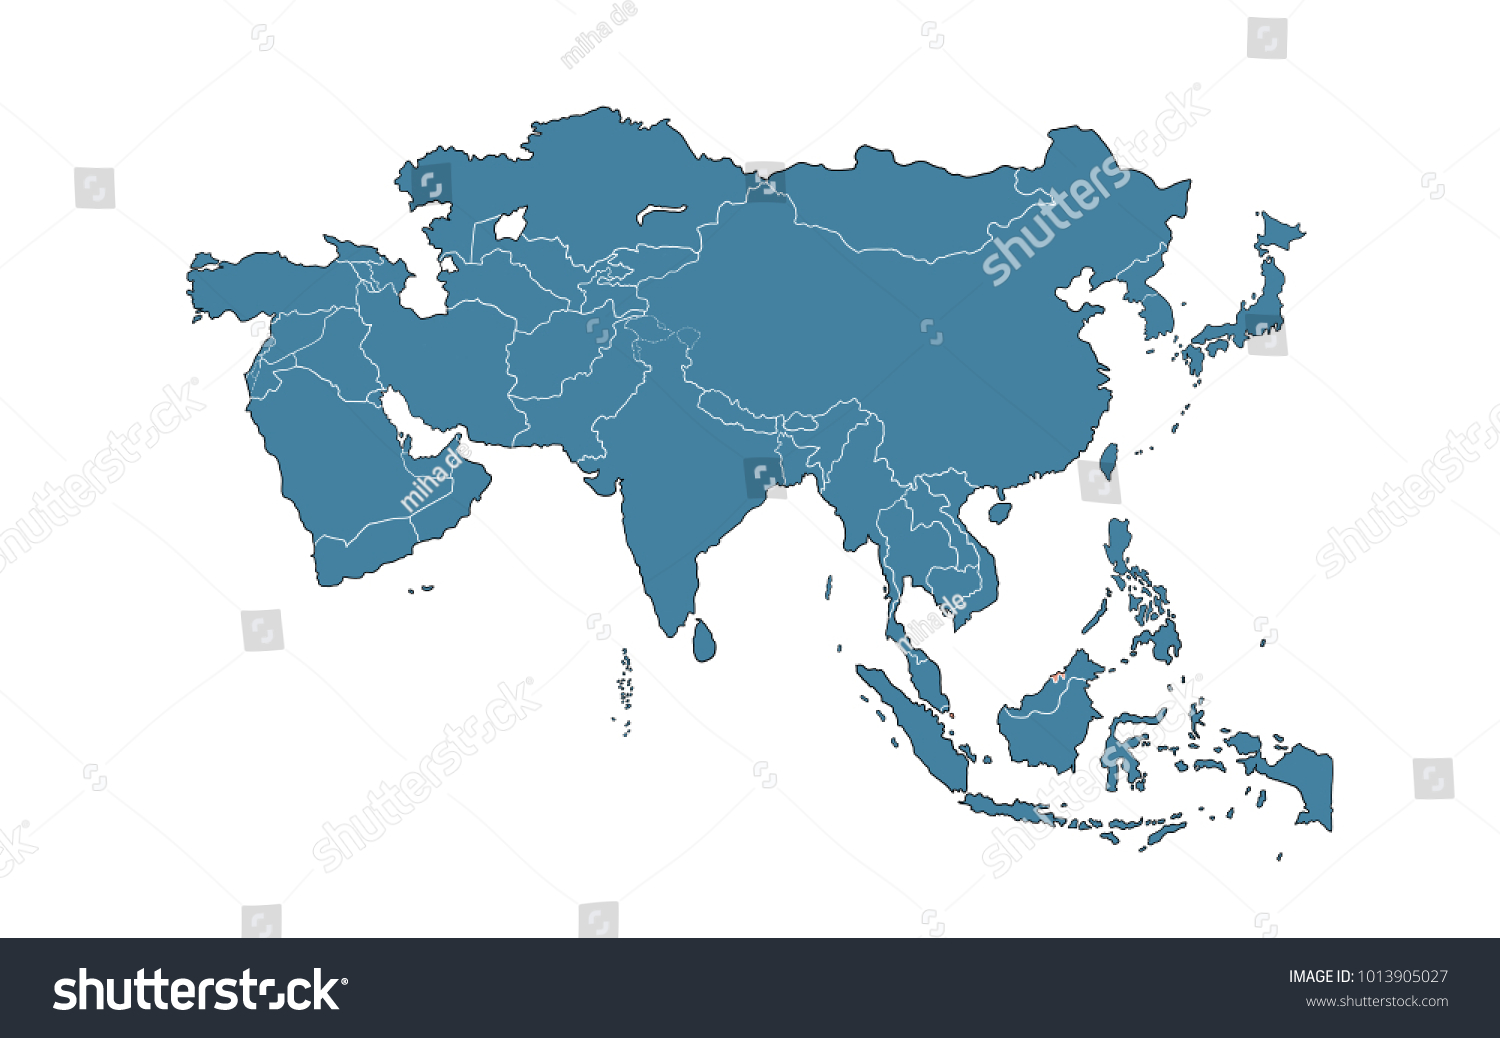 Royalty Free Stock Illustration Of Brunei On Map Asia Stock